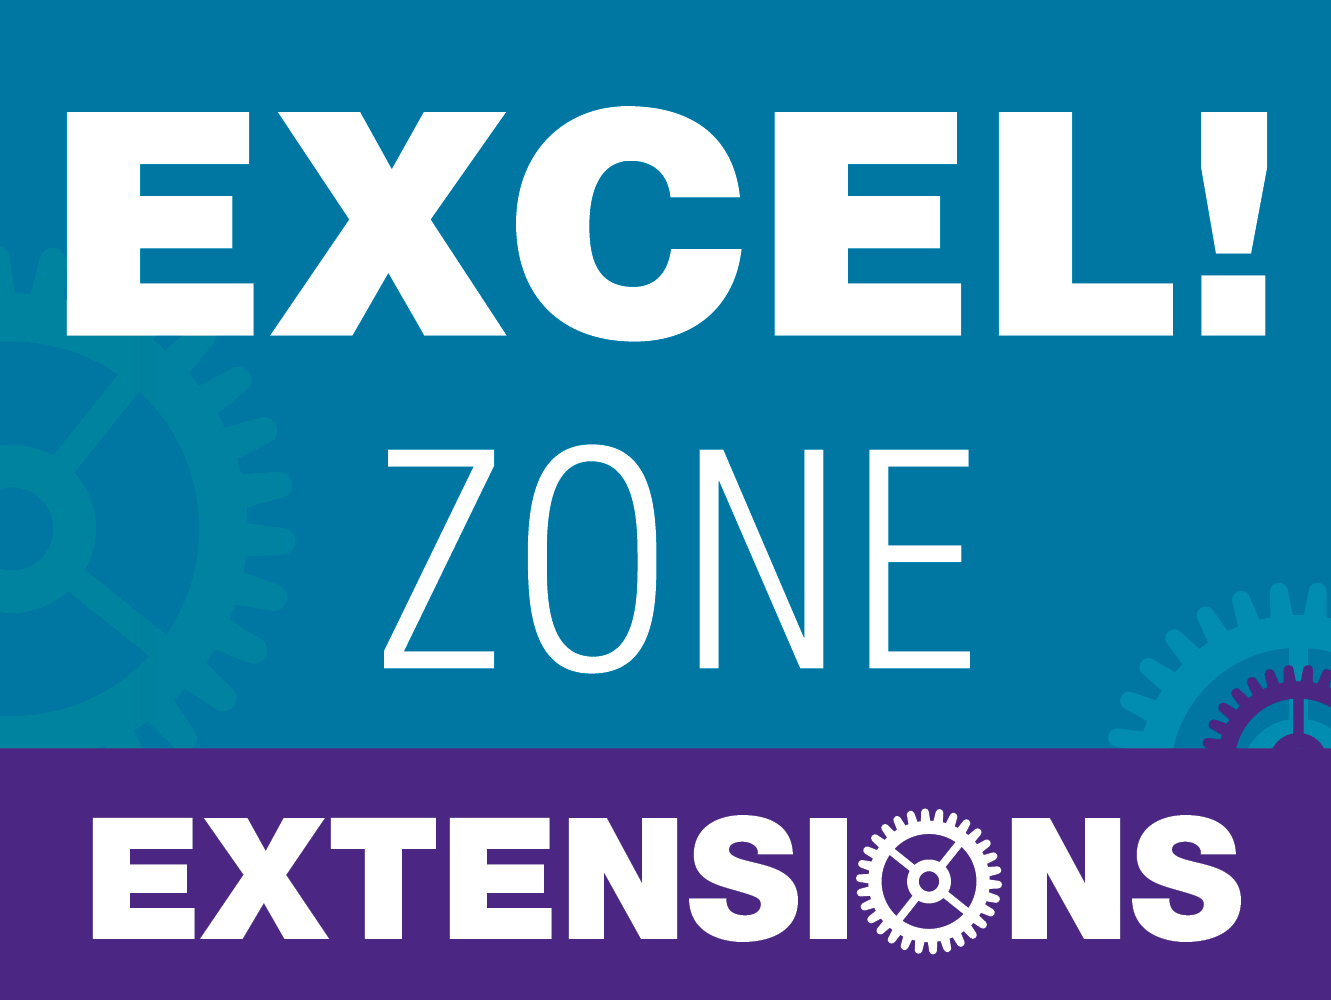 excel zone extensions poster